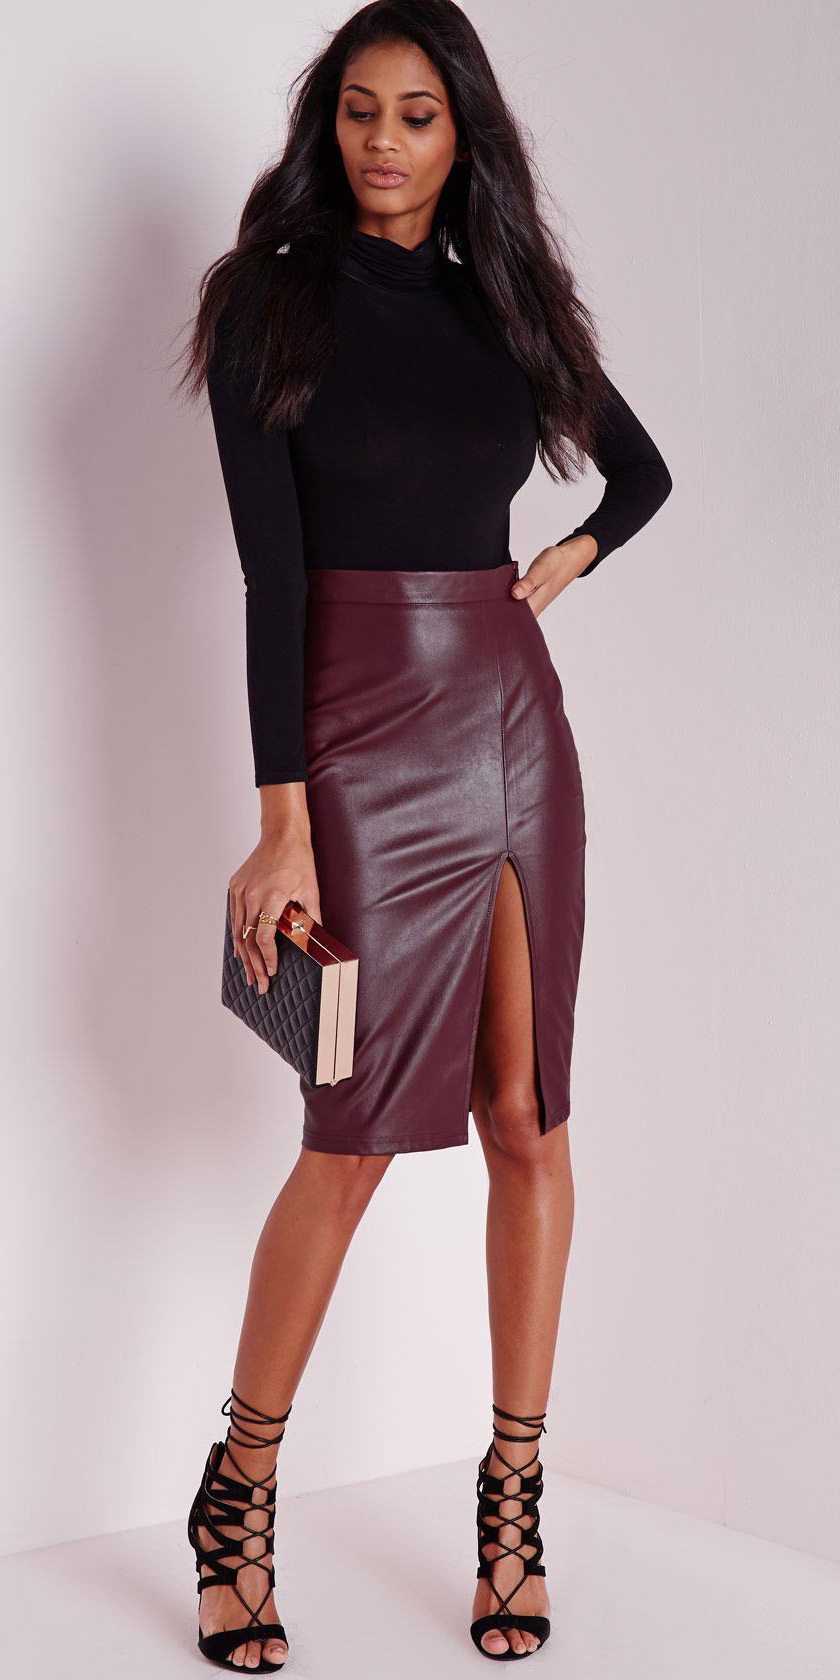 burgundy-pencil-skirt-leather-black-sweater-black-shoe-sandalh-fall-winter-brun-dinner.jpg